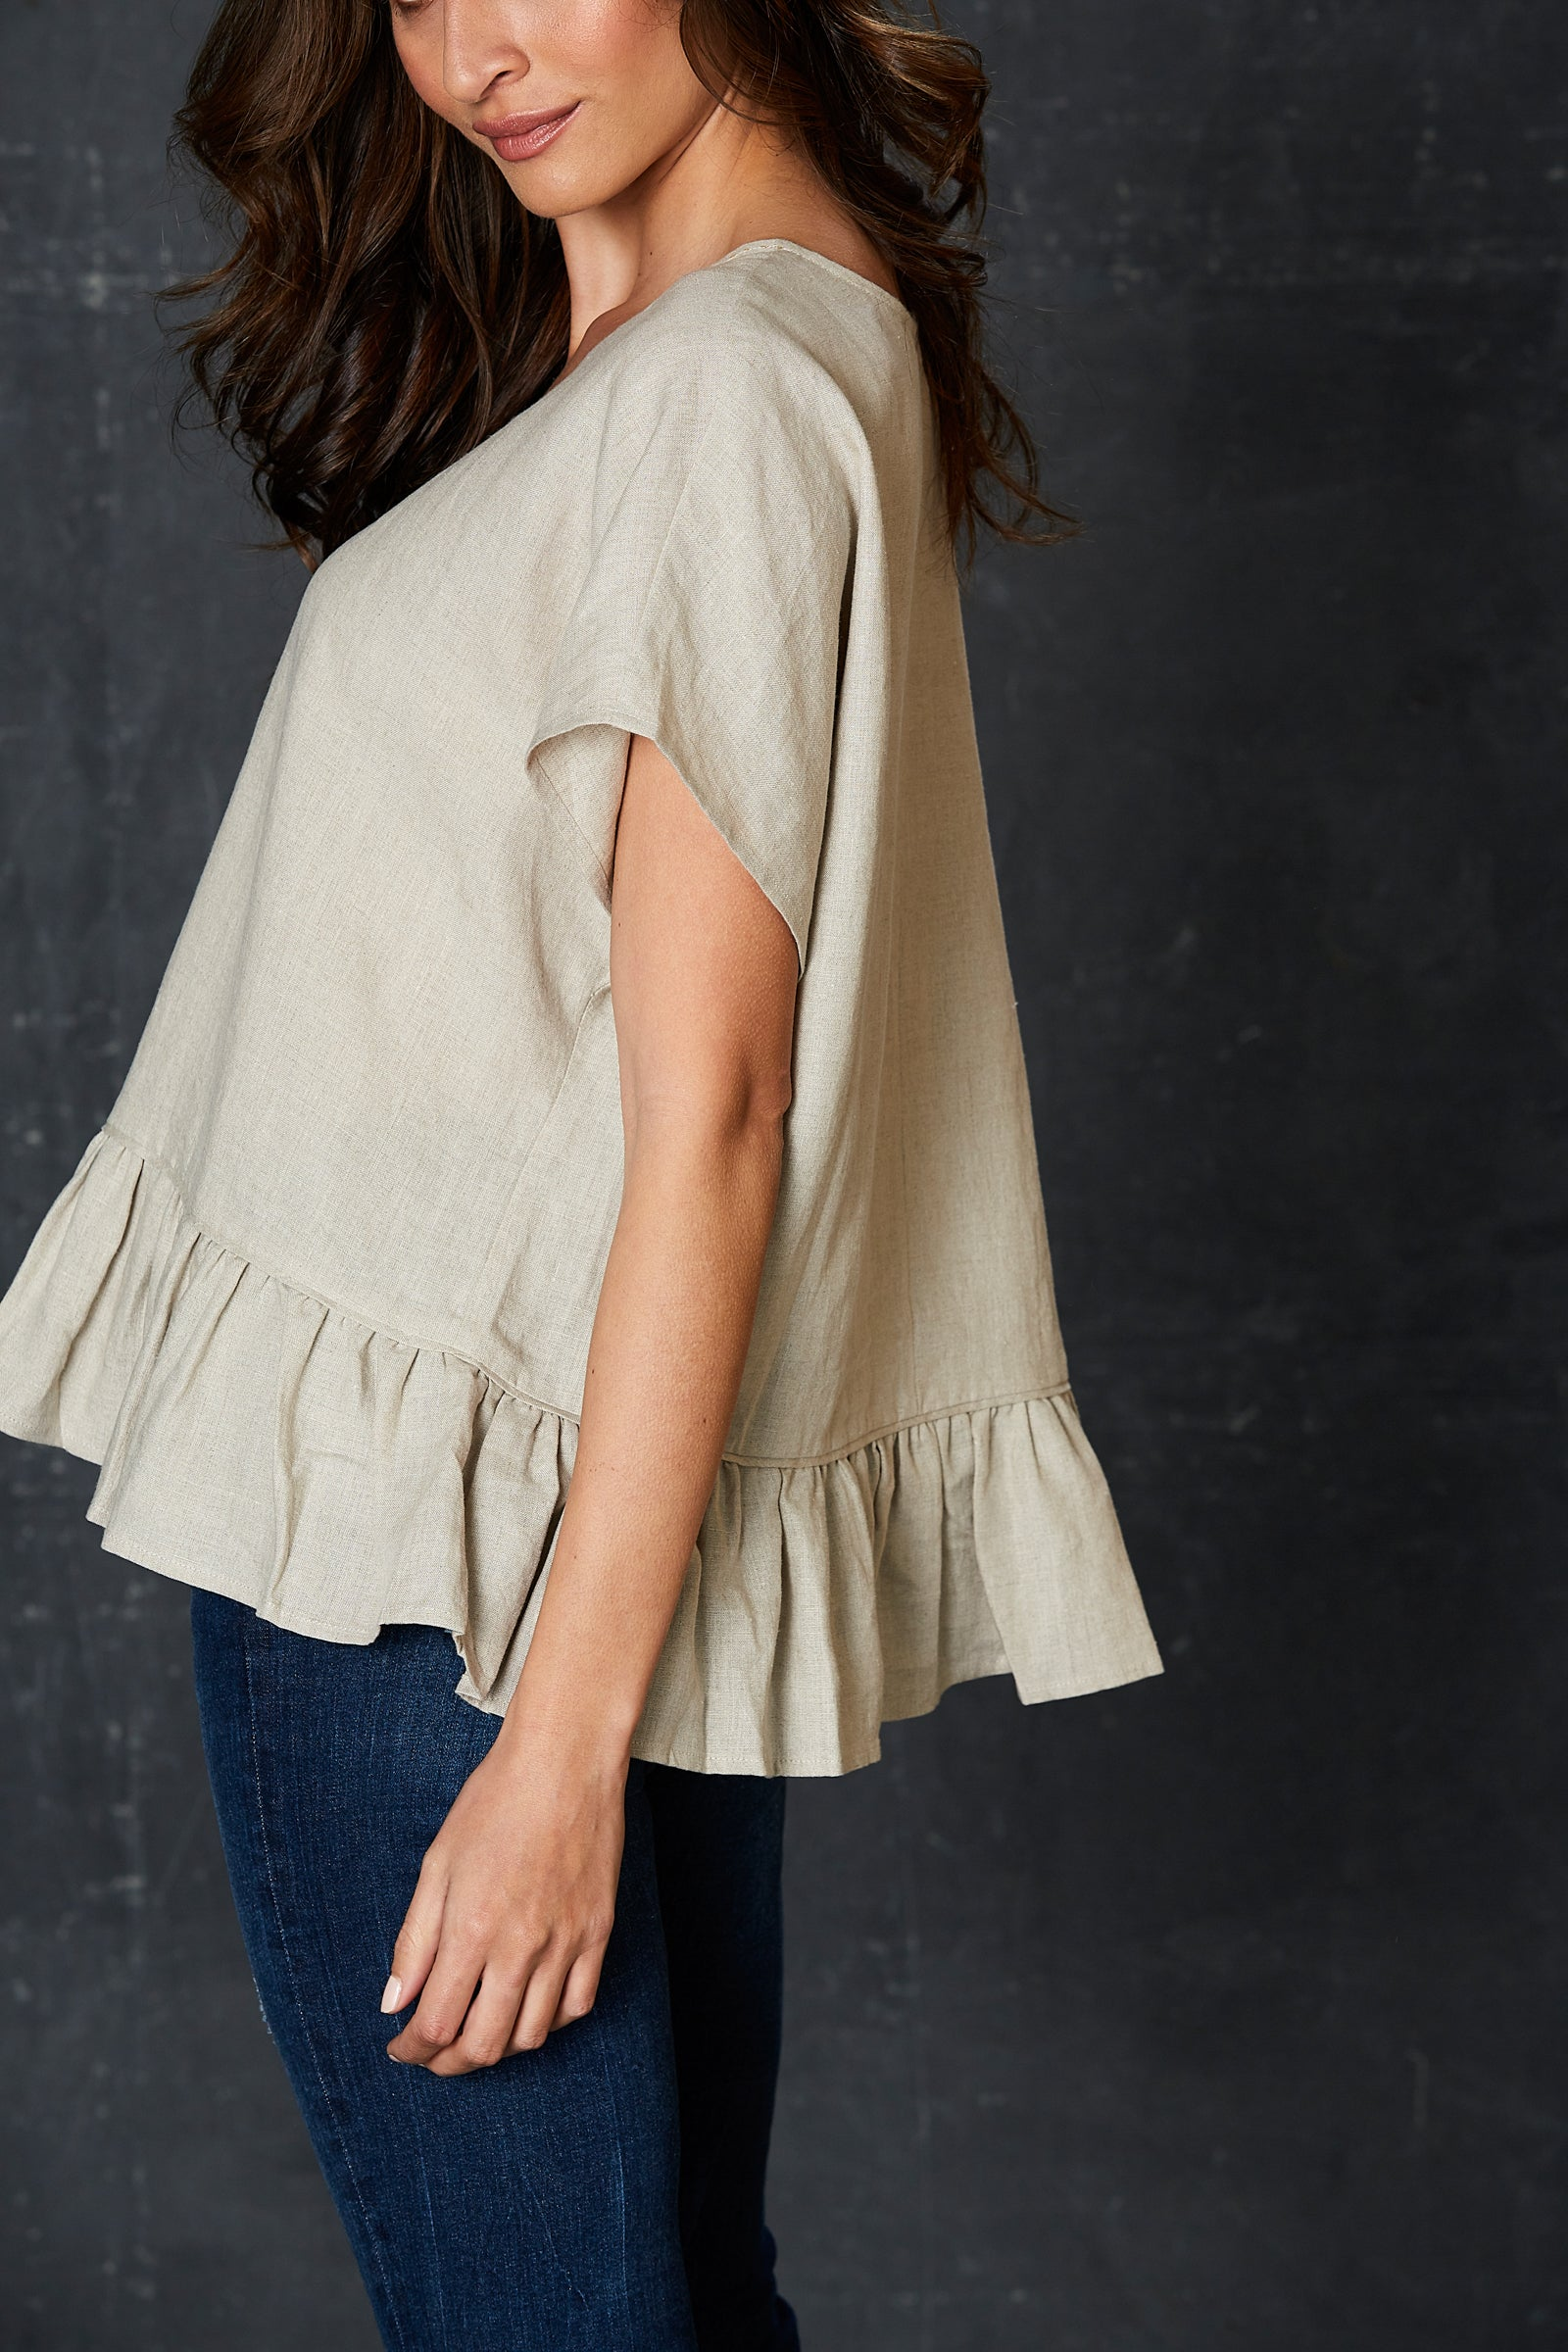 Bask Top - Flax - eb&ive Clothing - Top S/S Linen One Size